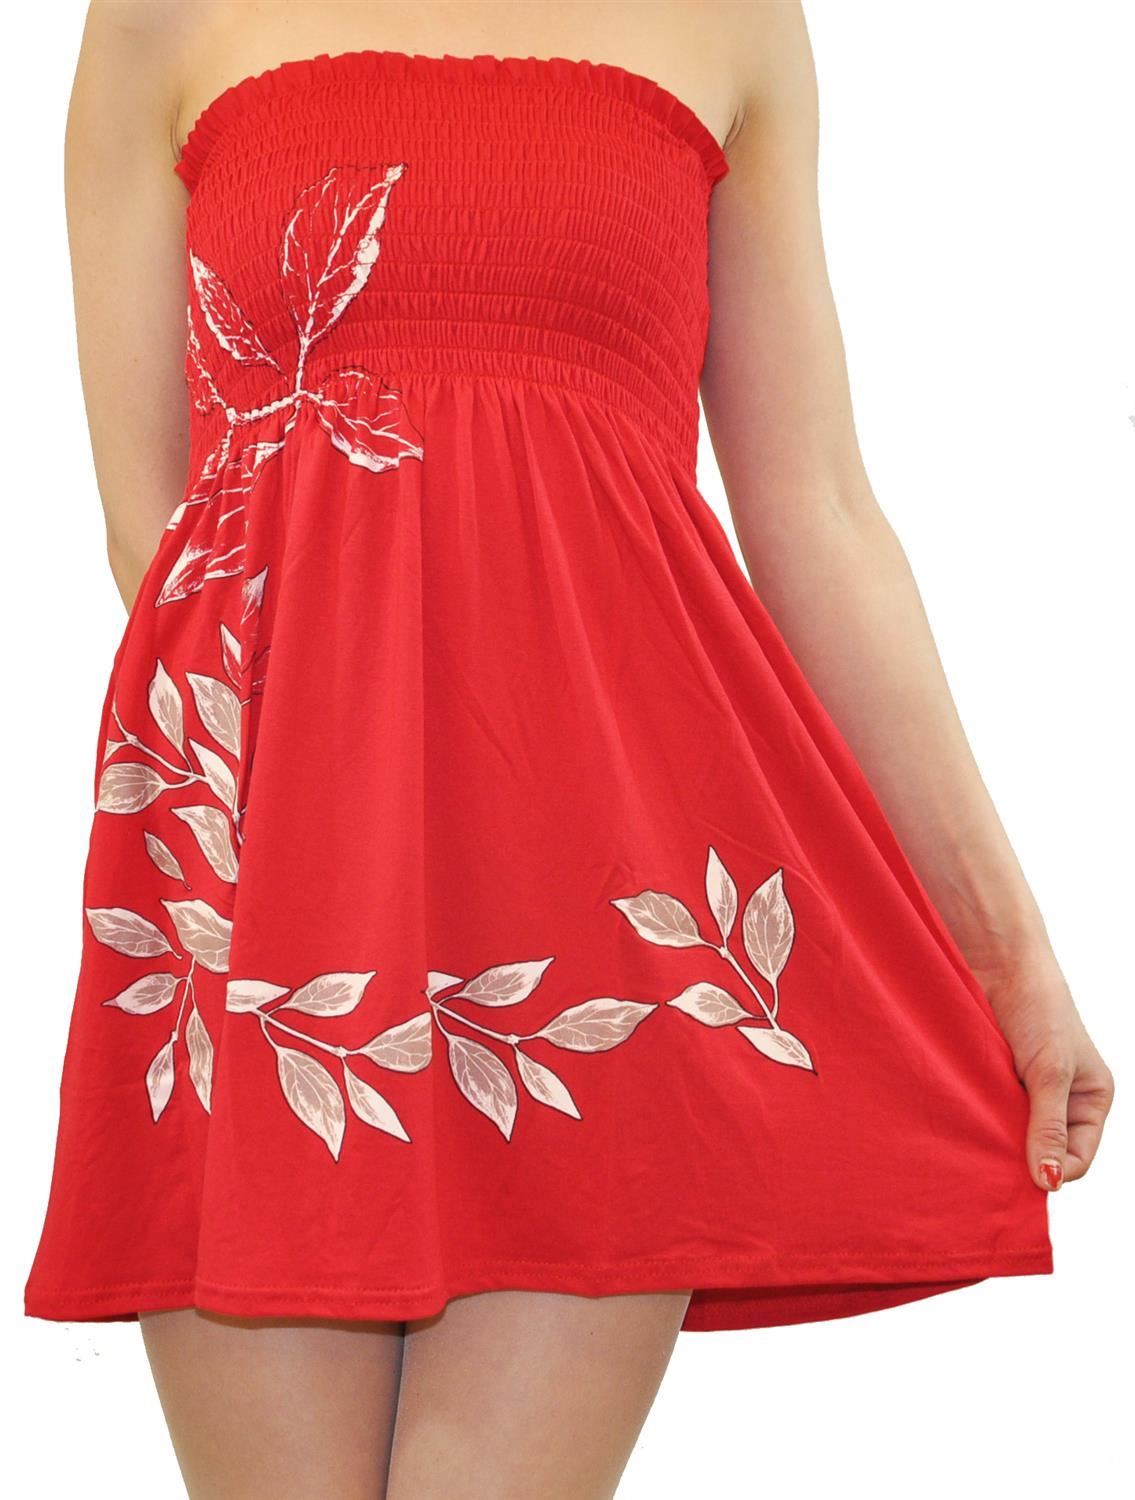 Ladies Plus Size Red Floral Strapless Sheering Boob Tube ...